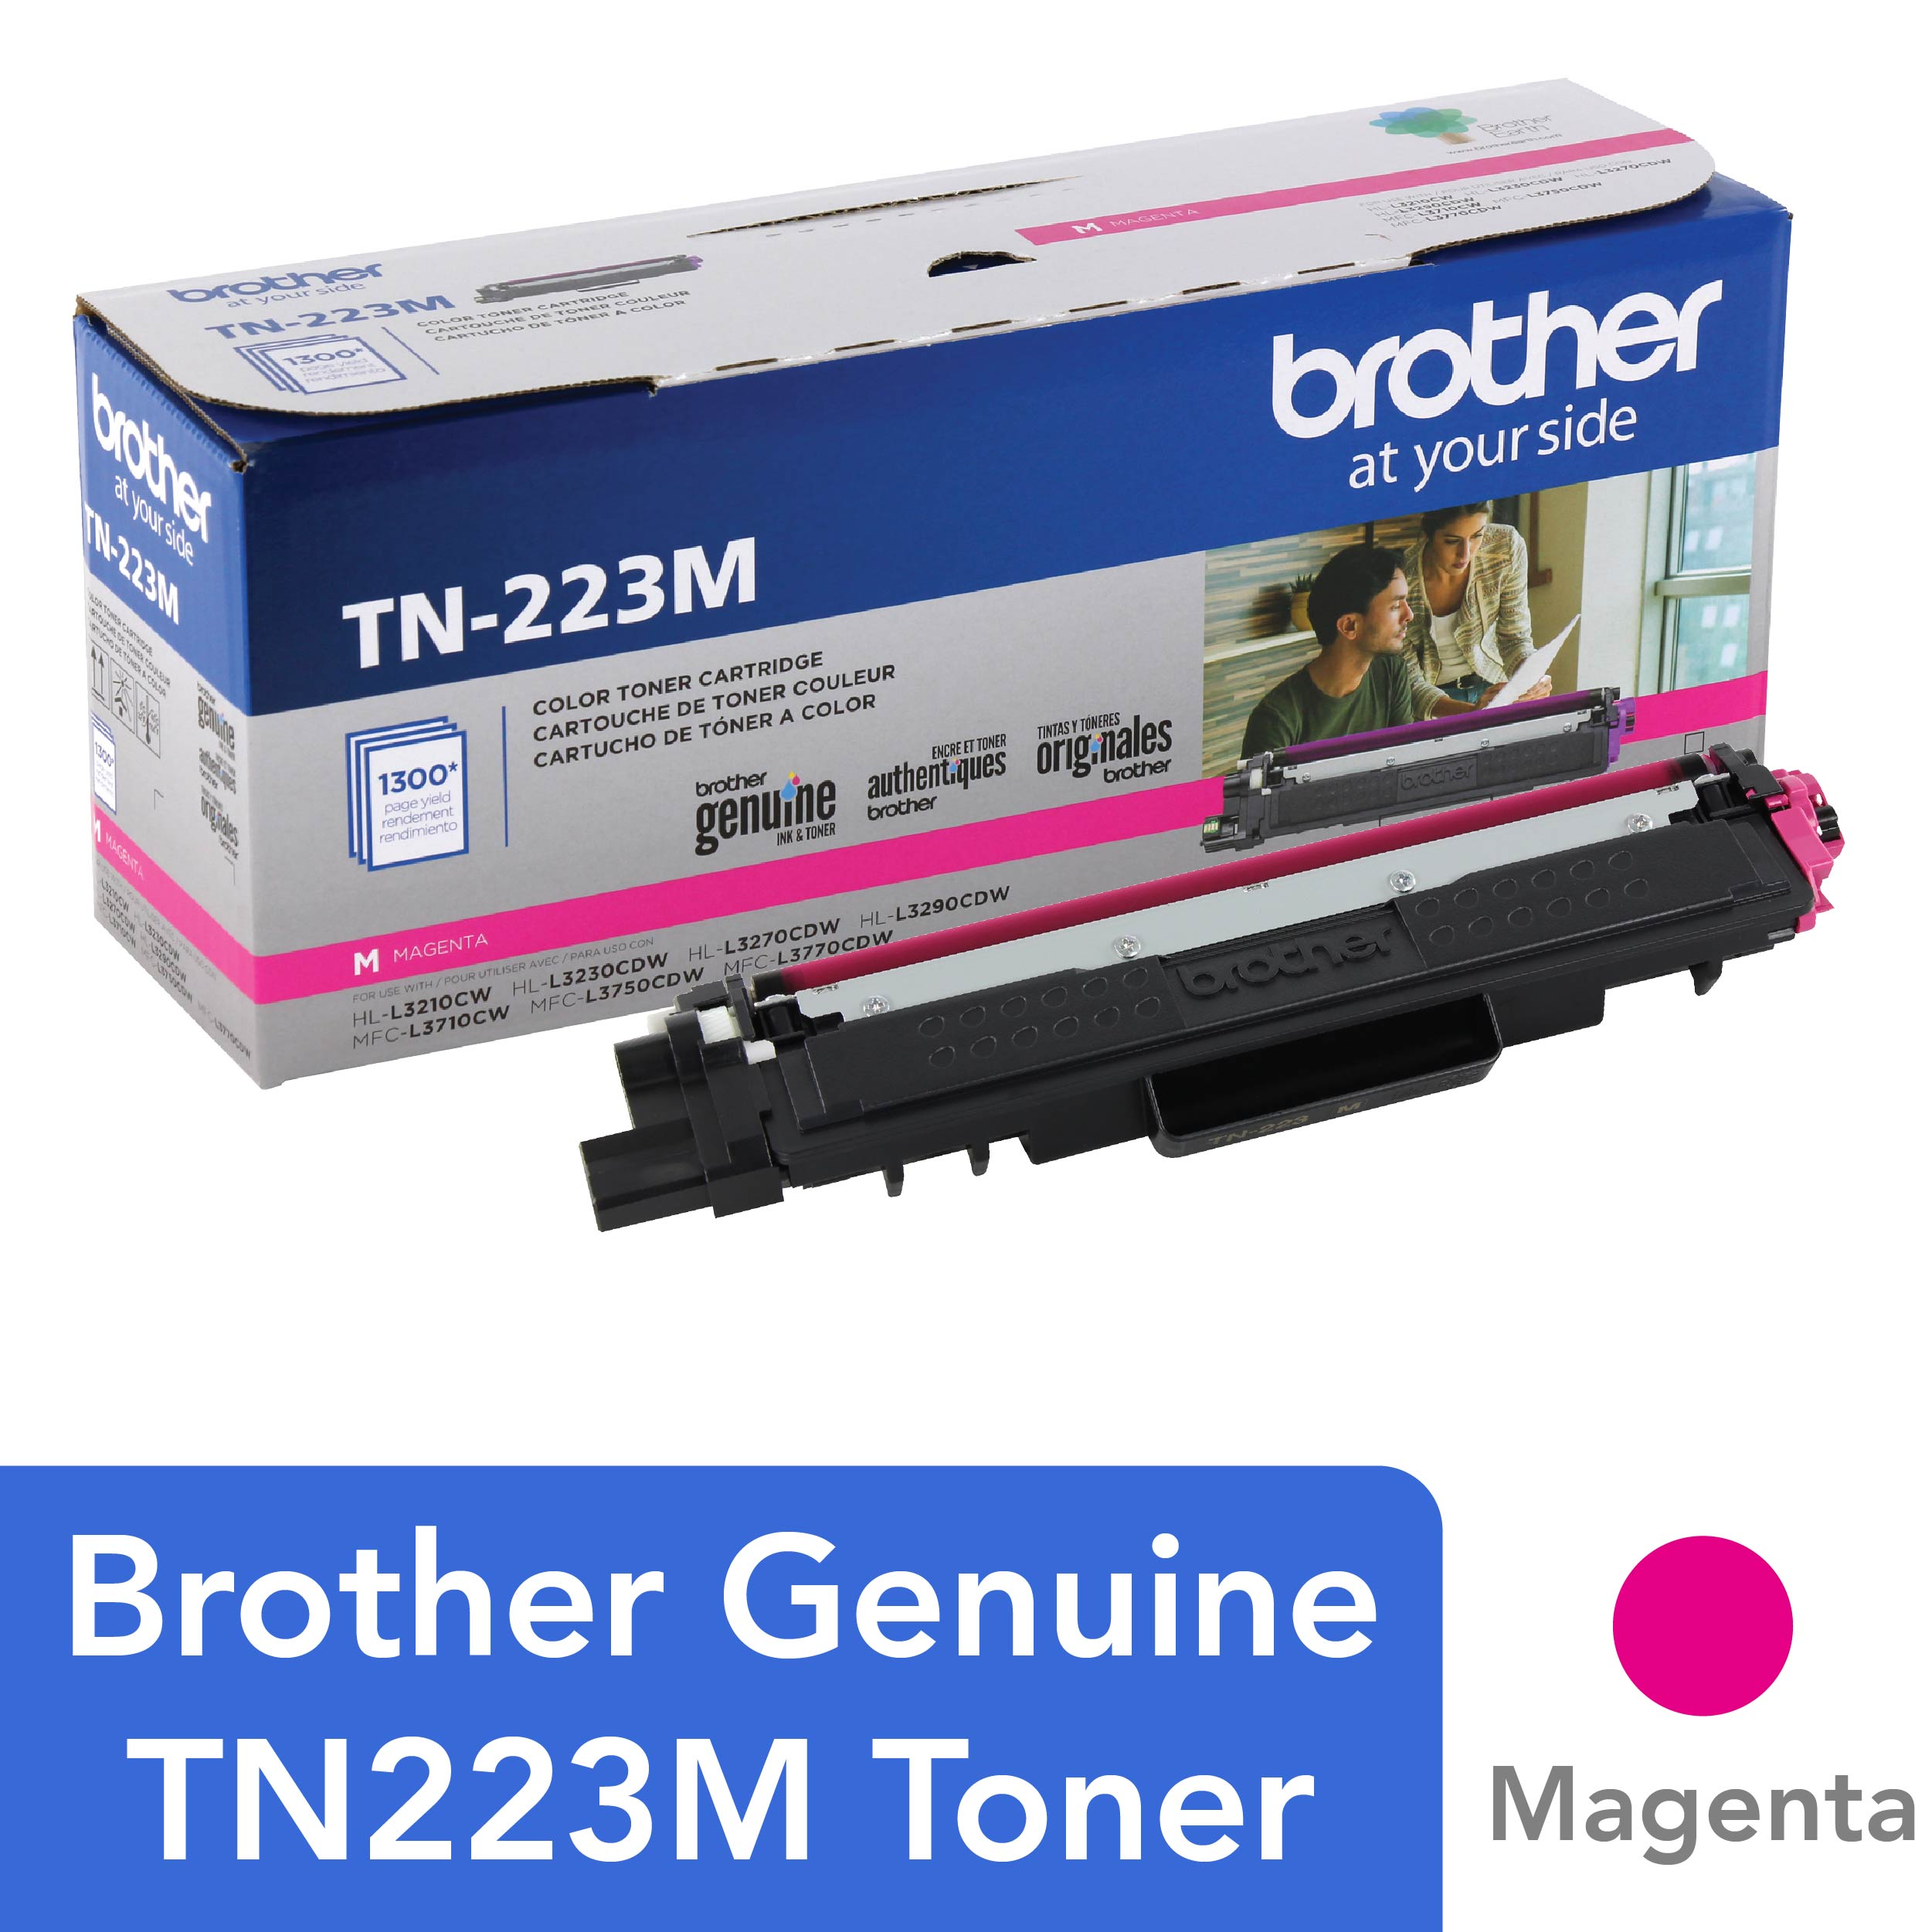 Brother Genuine TN-223M Standard Yield Magenta Toner Cartridge